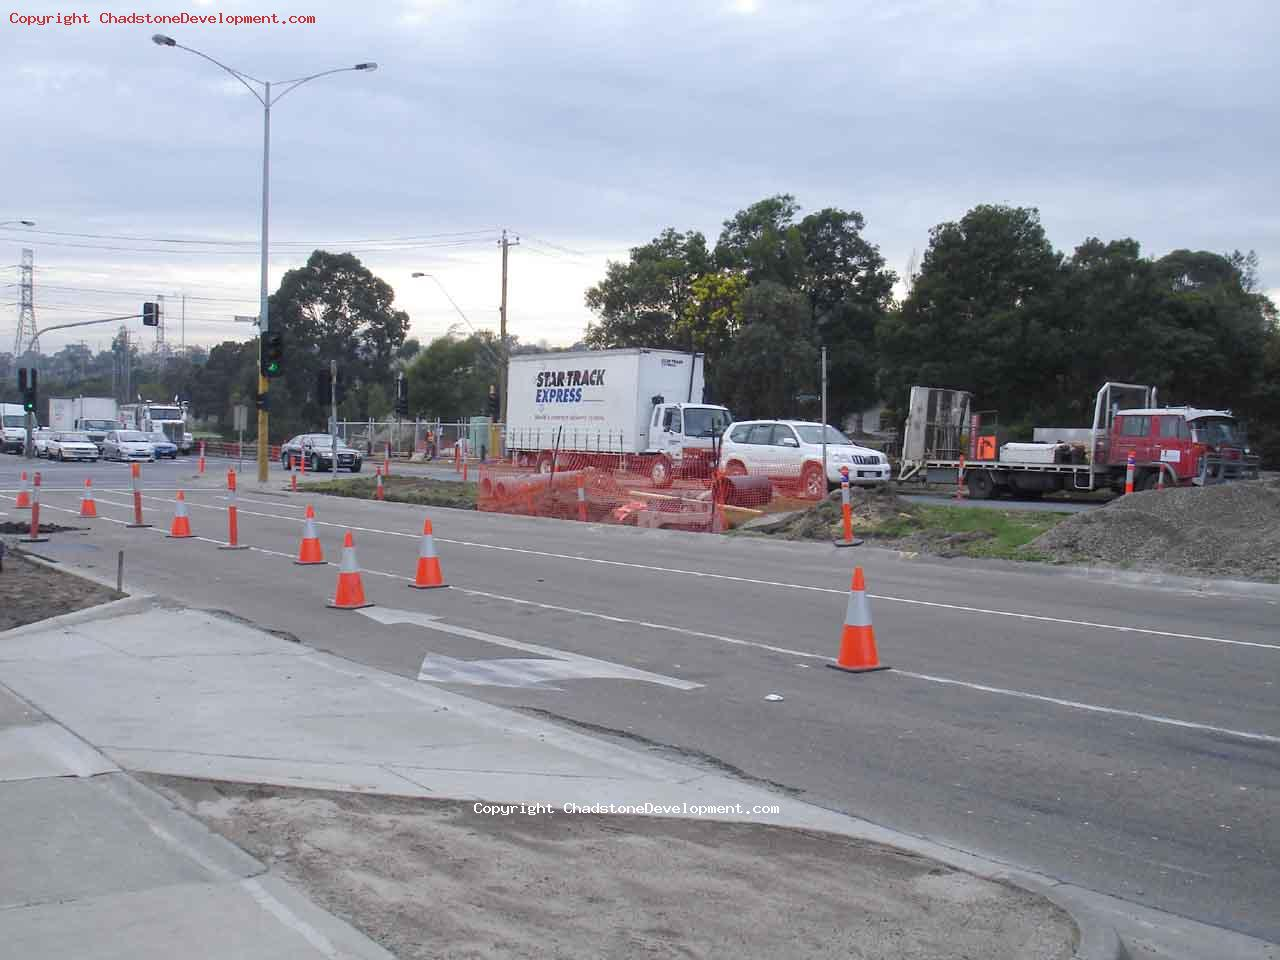 Preparing the shortening of the median strip on warrigal rd - Chadstone Development Discussions